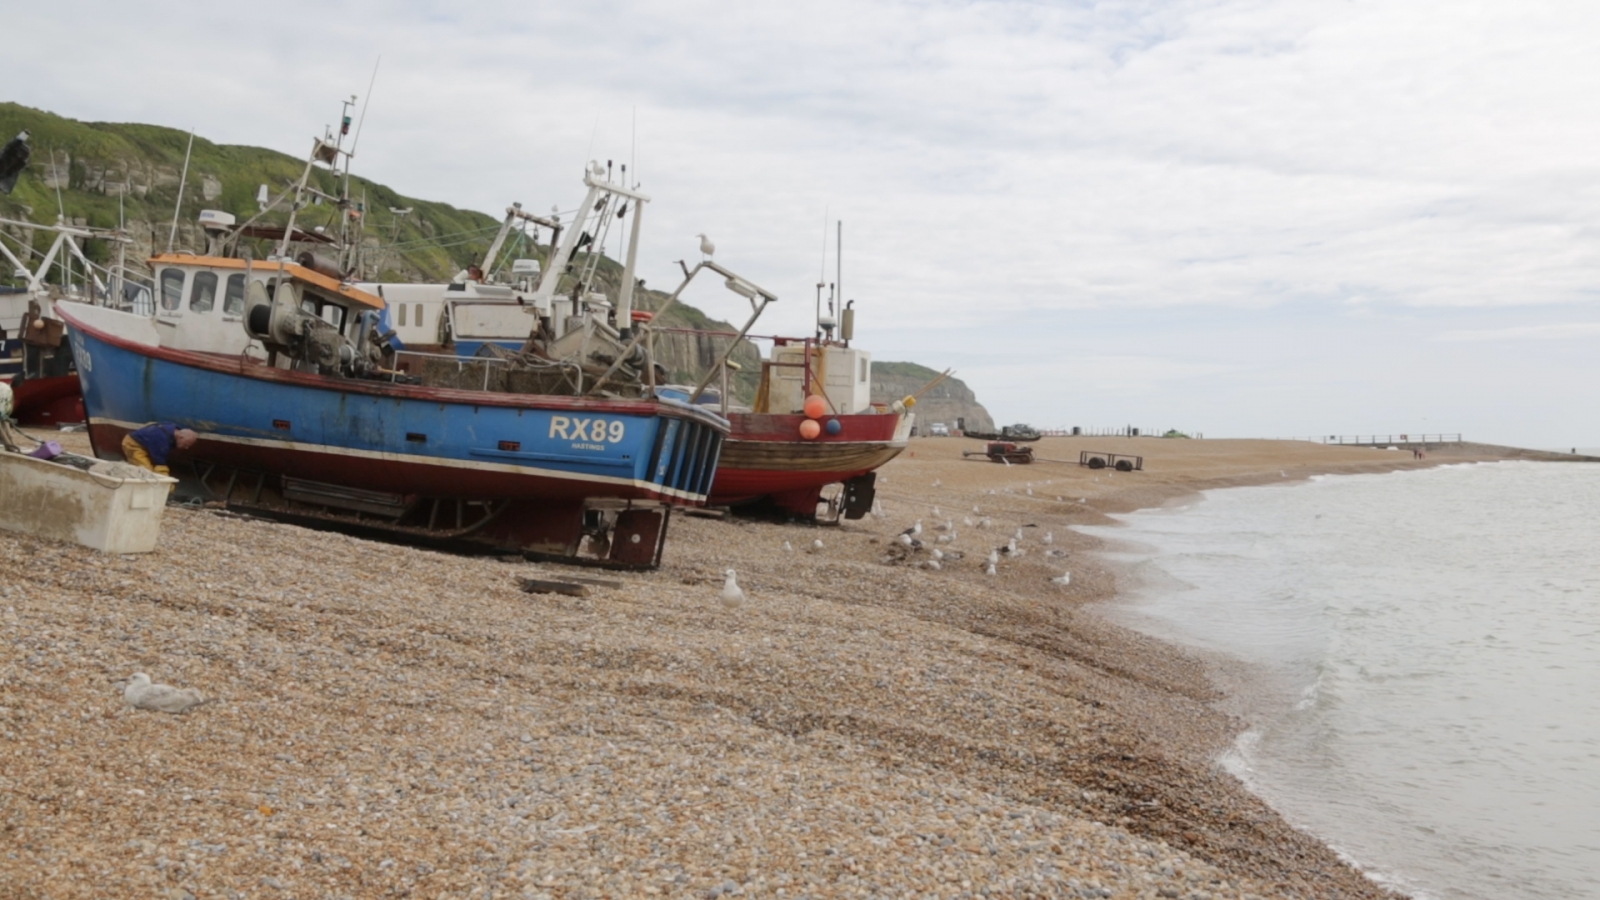 Fishing town of Hastings